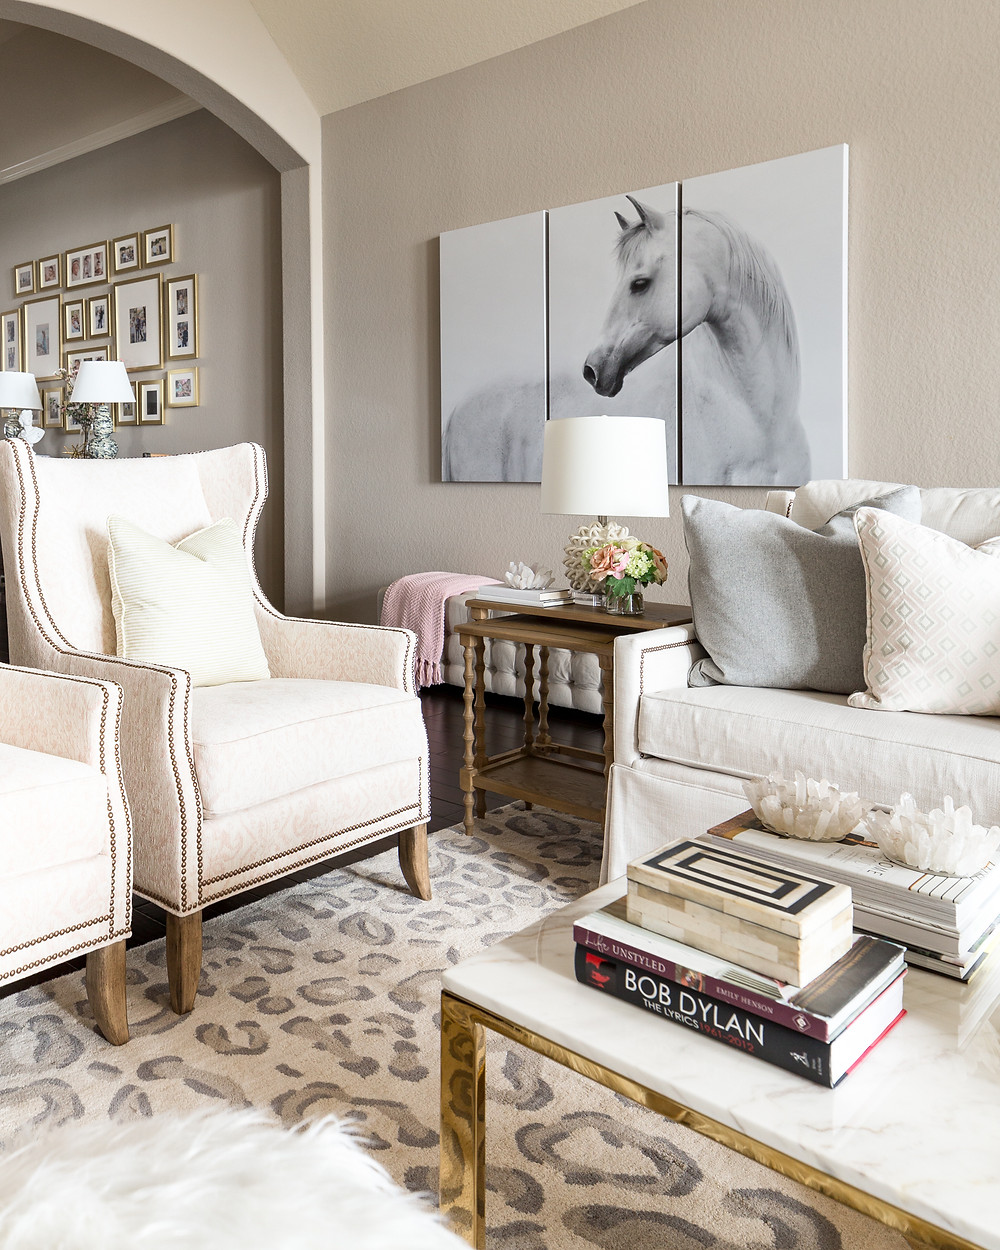 Living Room With Gallery Wall And Chairs In Blush Tones